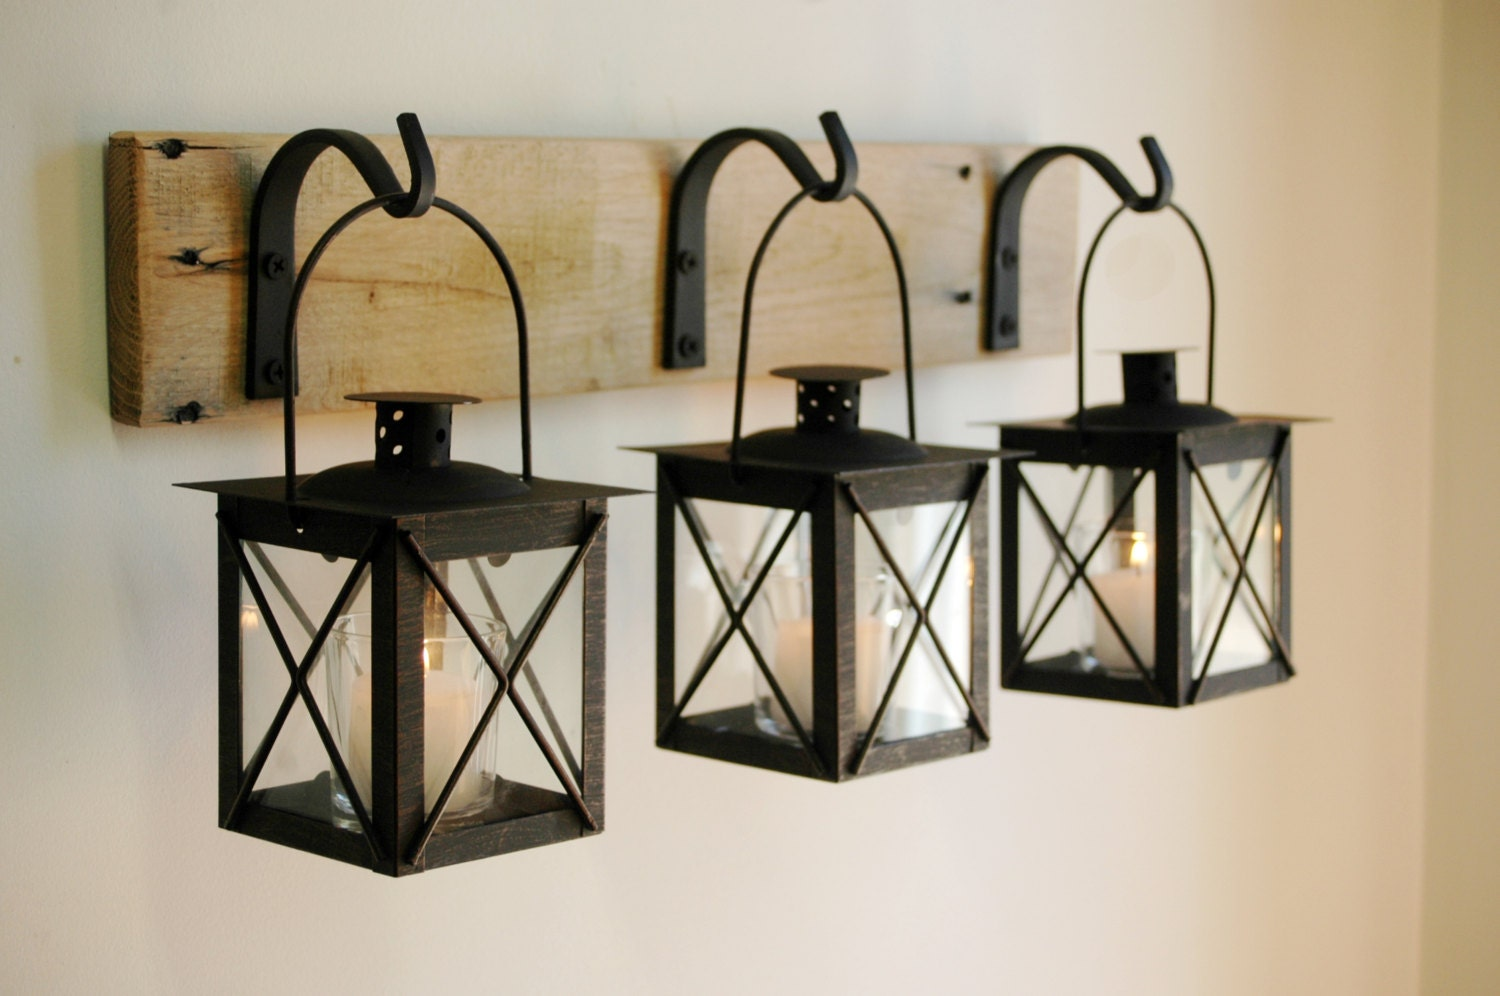 Black lantern trio wall decor home decor rustic decor for House of decorative accessories